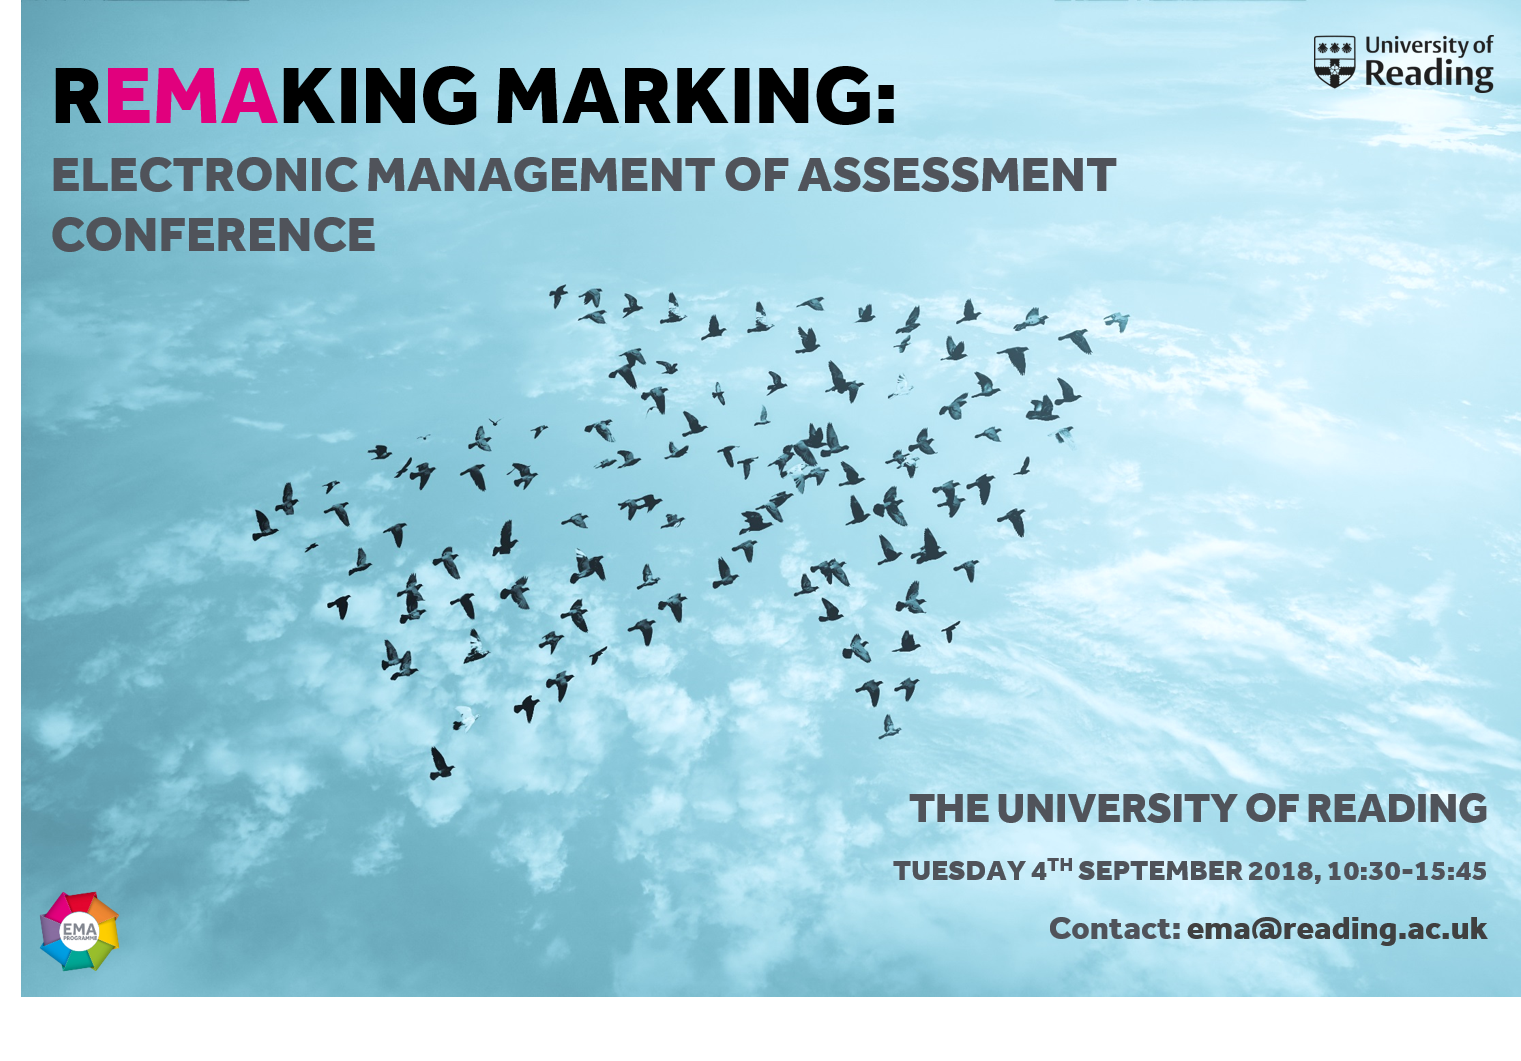 Remaking Marking Conference poster, displaying birds migrating in an arrow formation